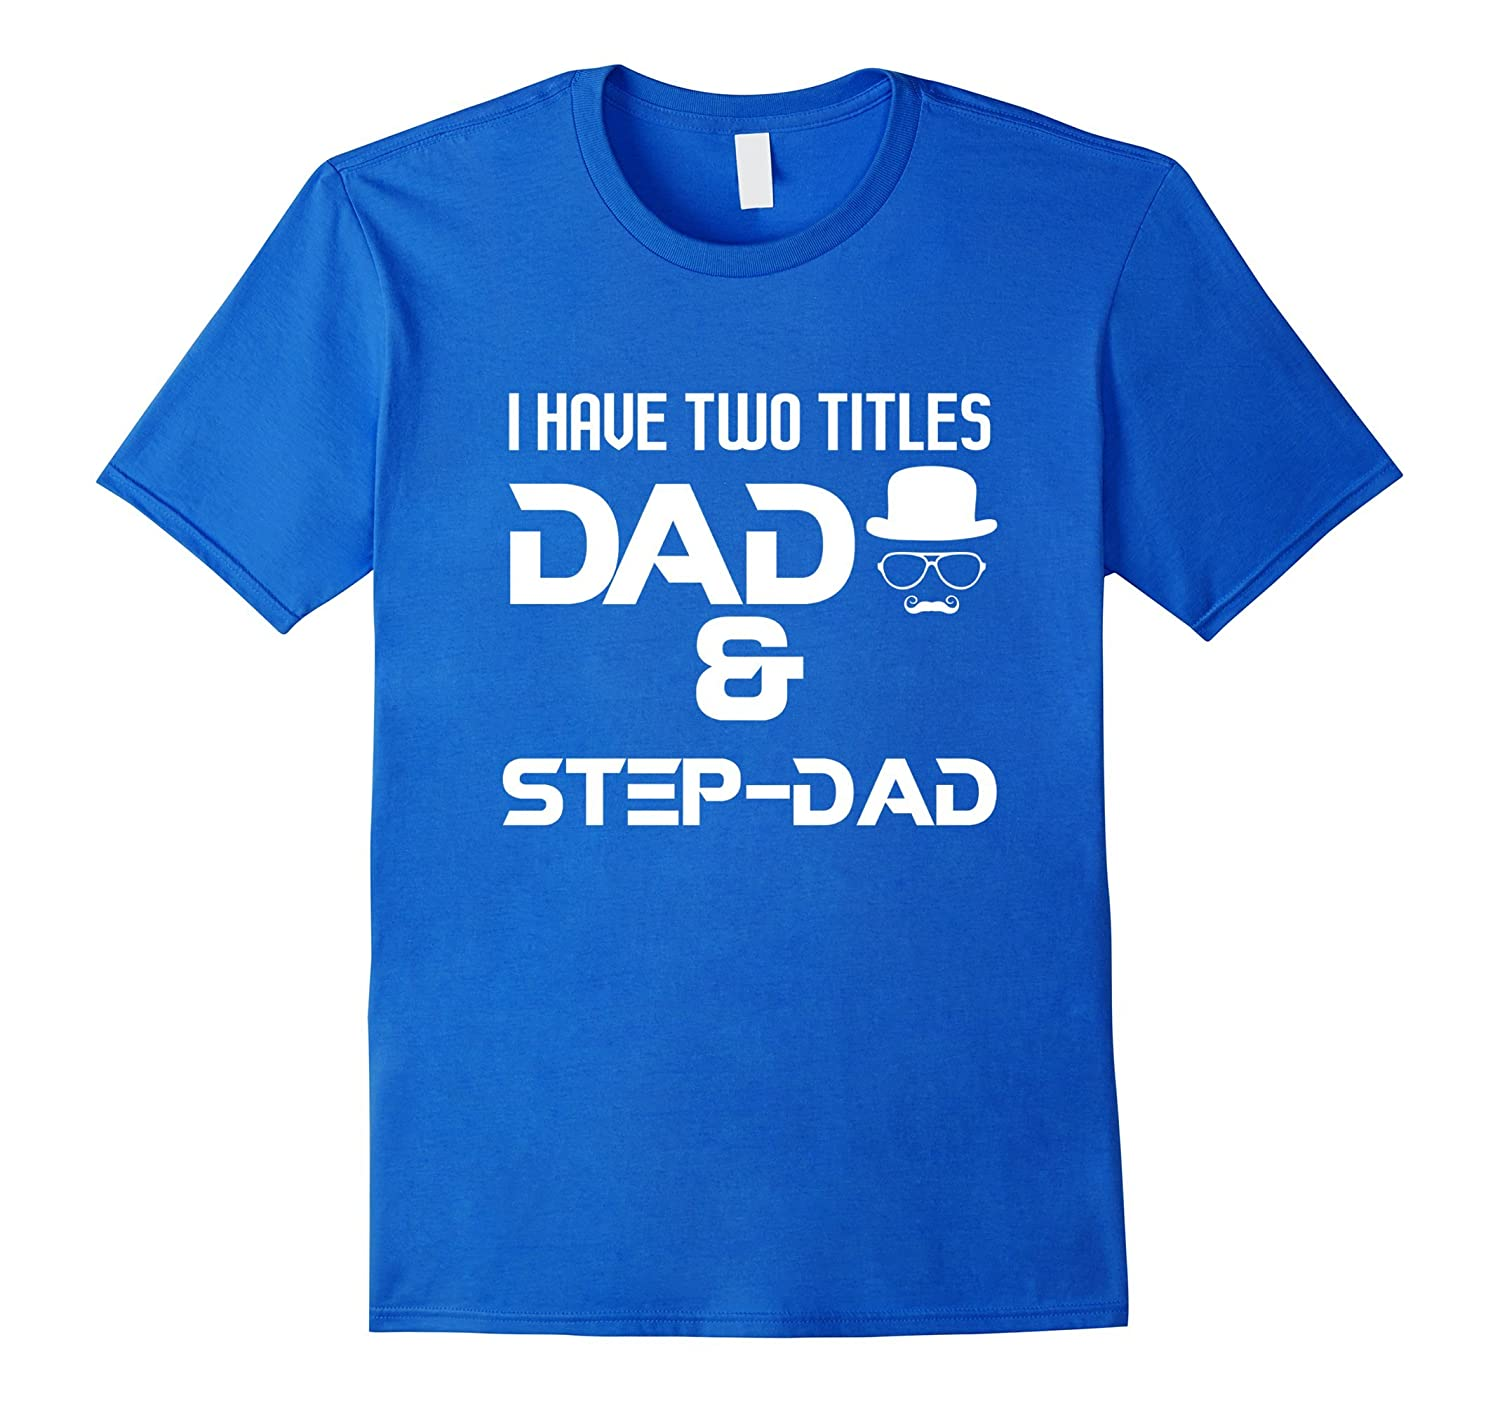 Funny I Have Two Titles Dad & Step Dad T-shirt